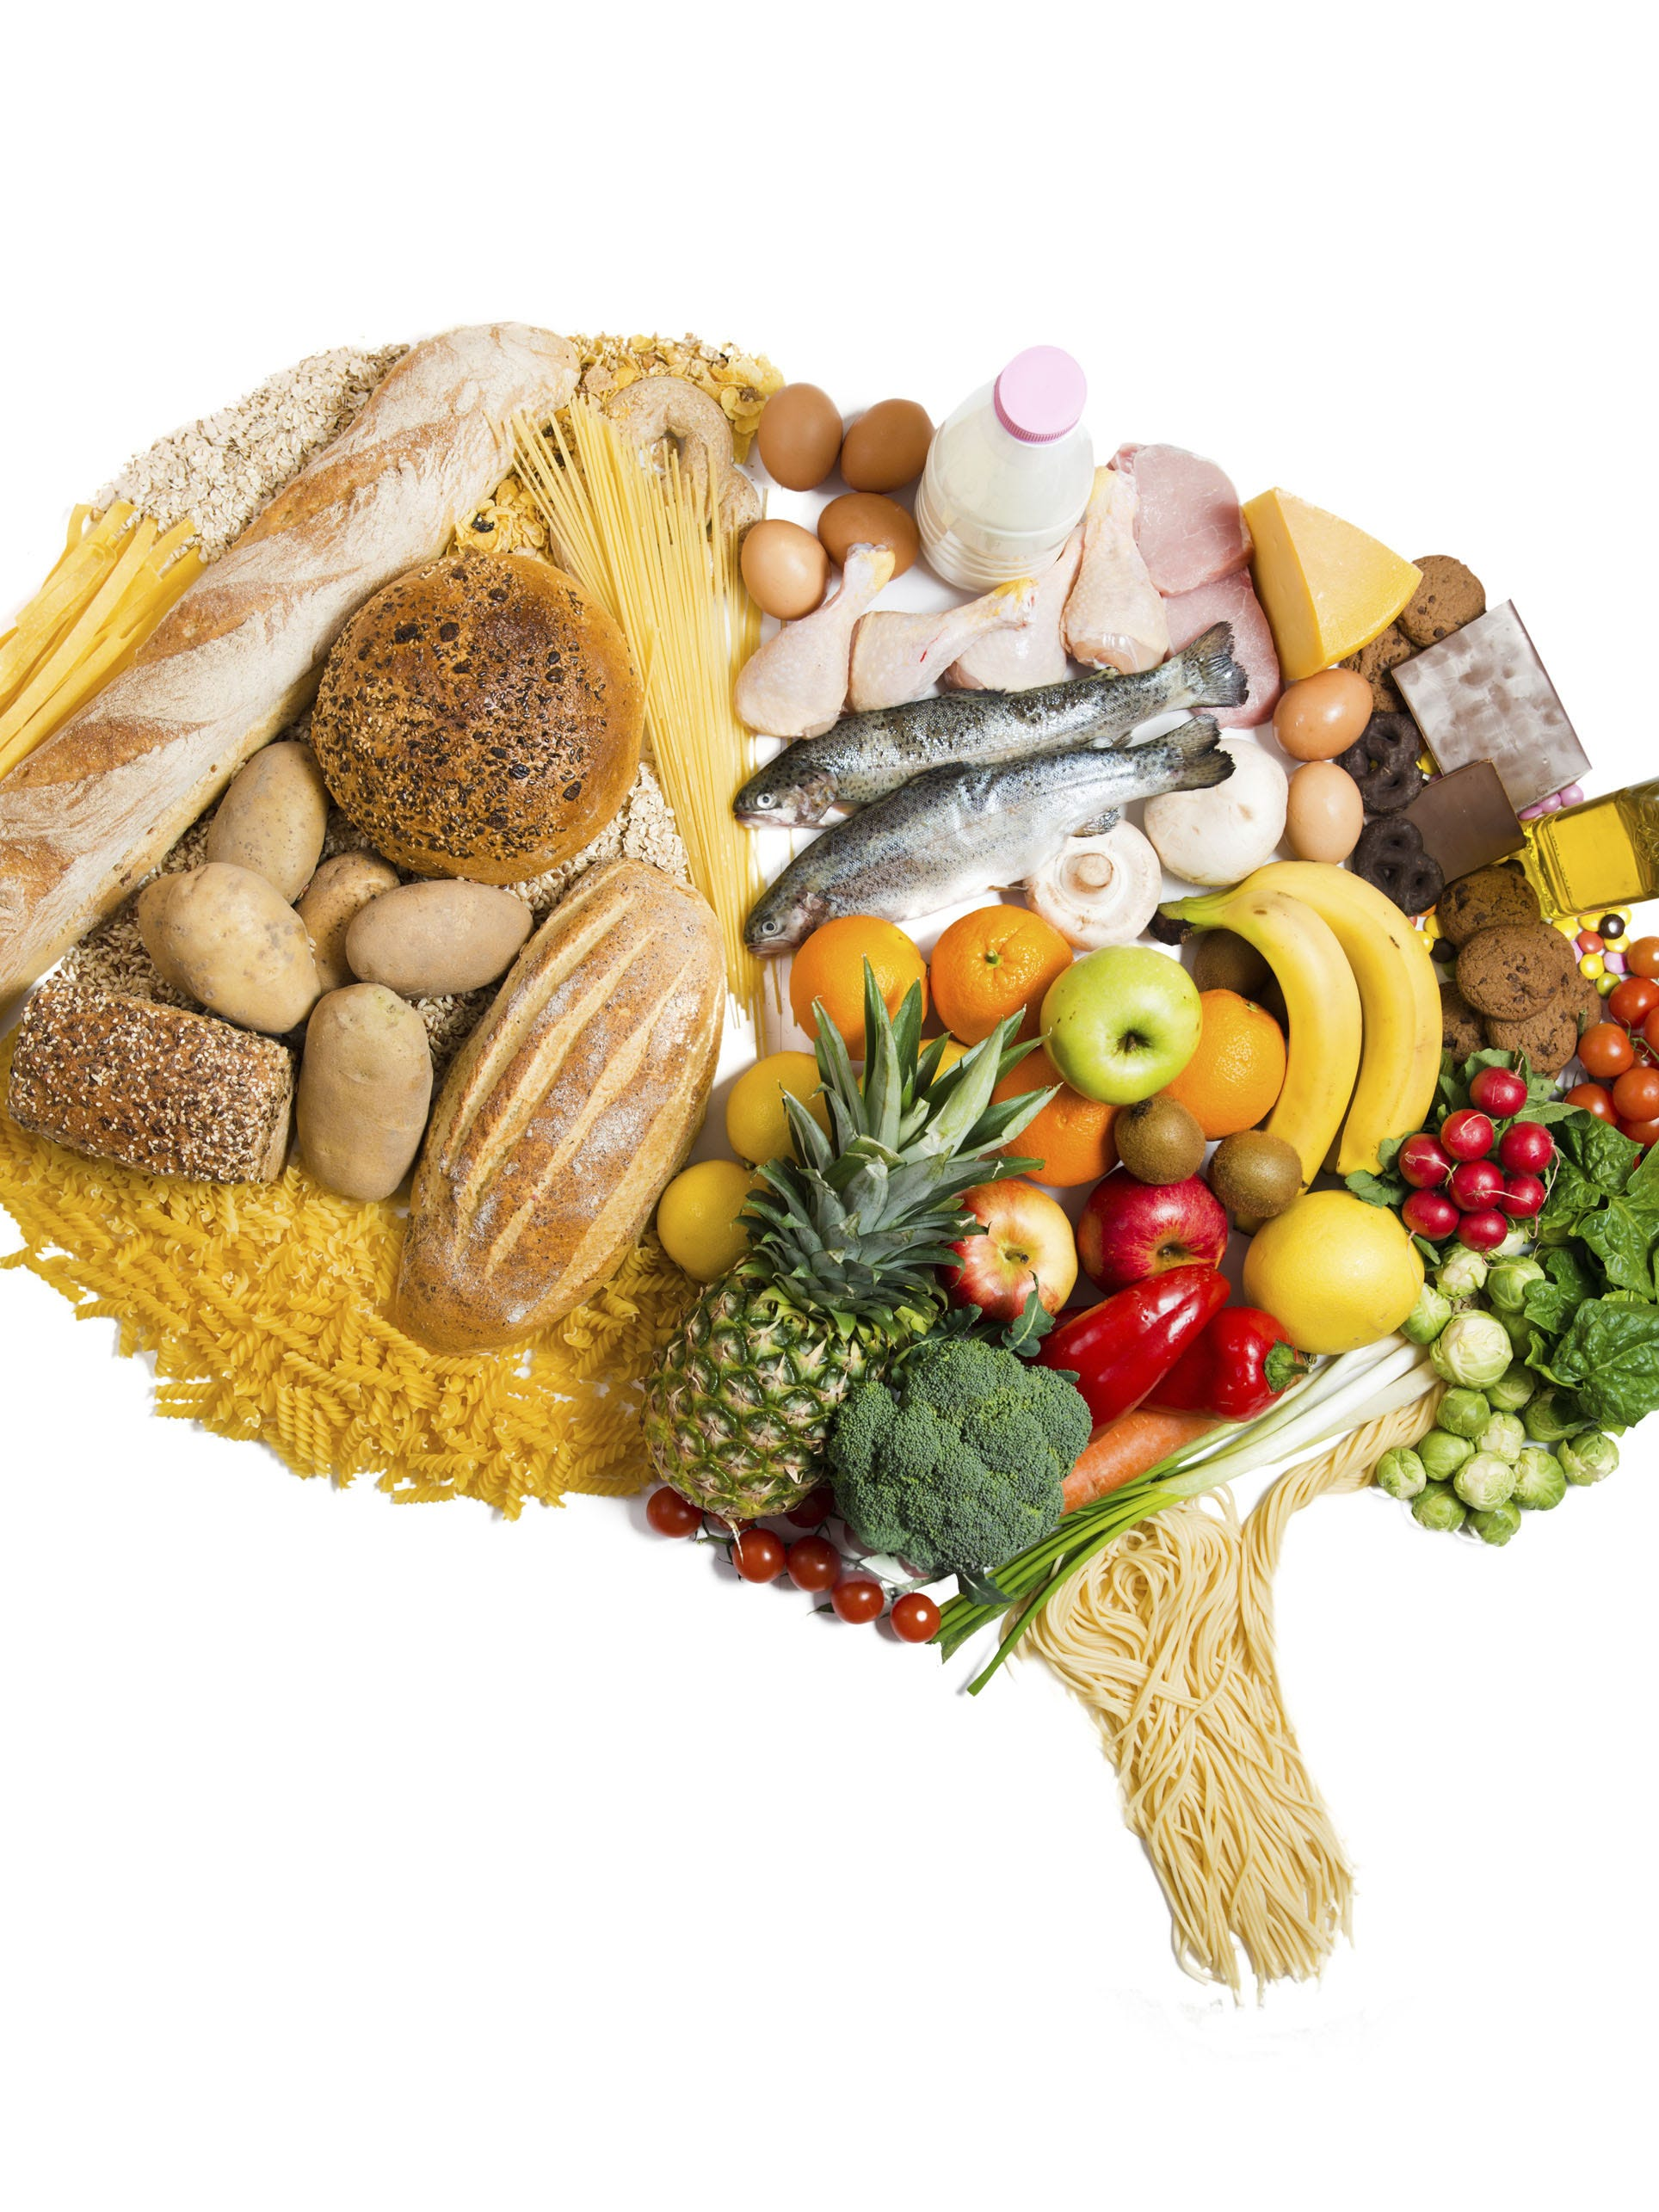 Brain foods: They're real and they can help